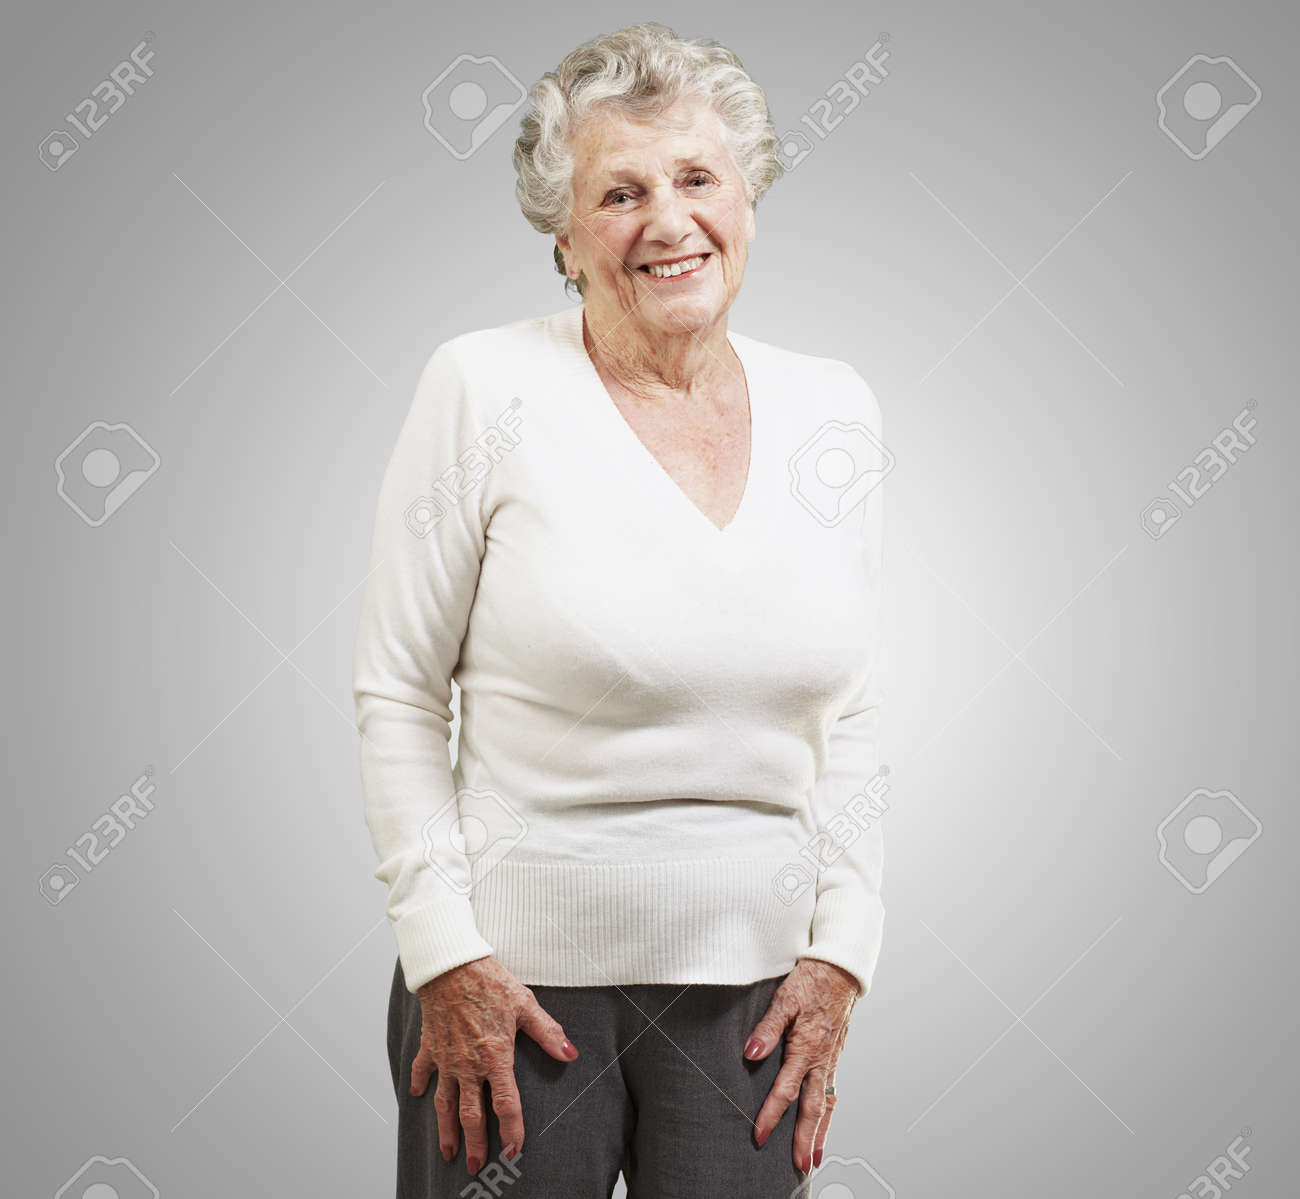 pretty senior woman smiling against a grey background Stock Photo - 13156585